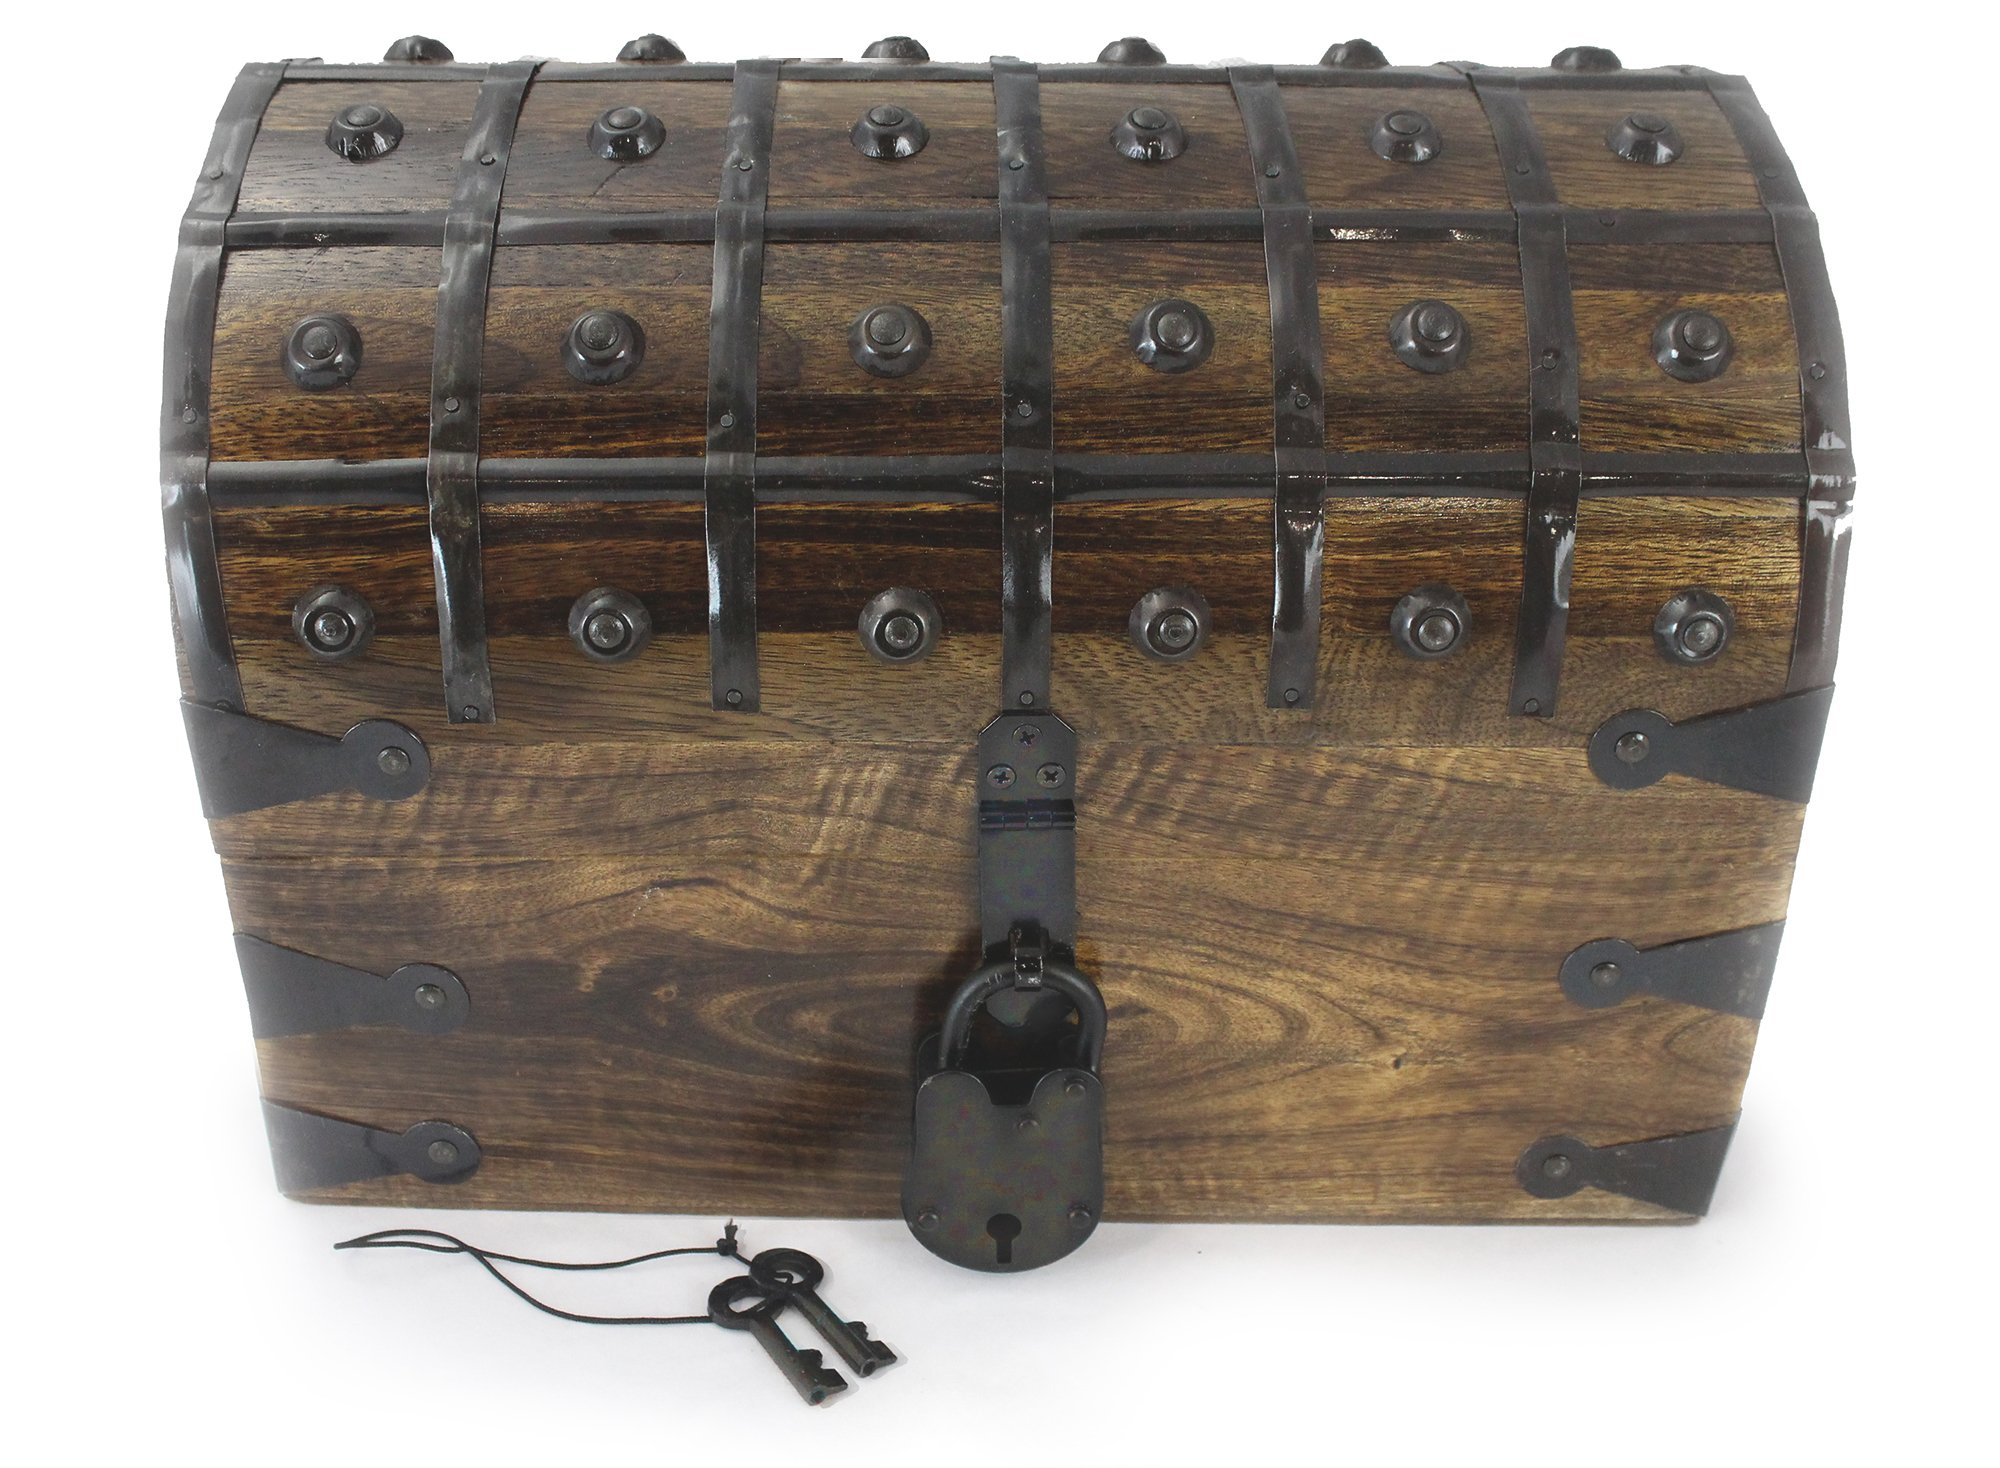 WellPackBox Large 12x9x9 Wooden Pirate Treasure Chest Box With Antique Style Lock And Skeleton Key (Classic Large)